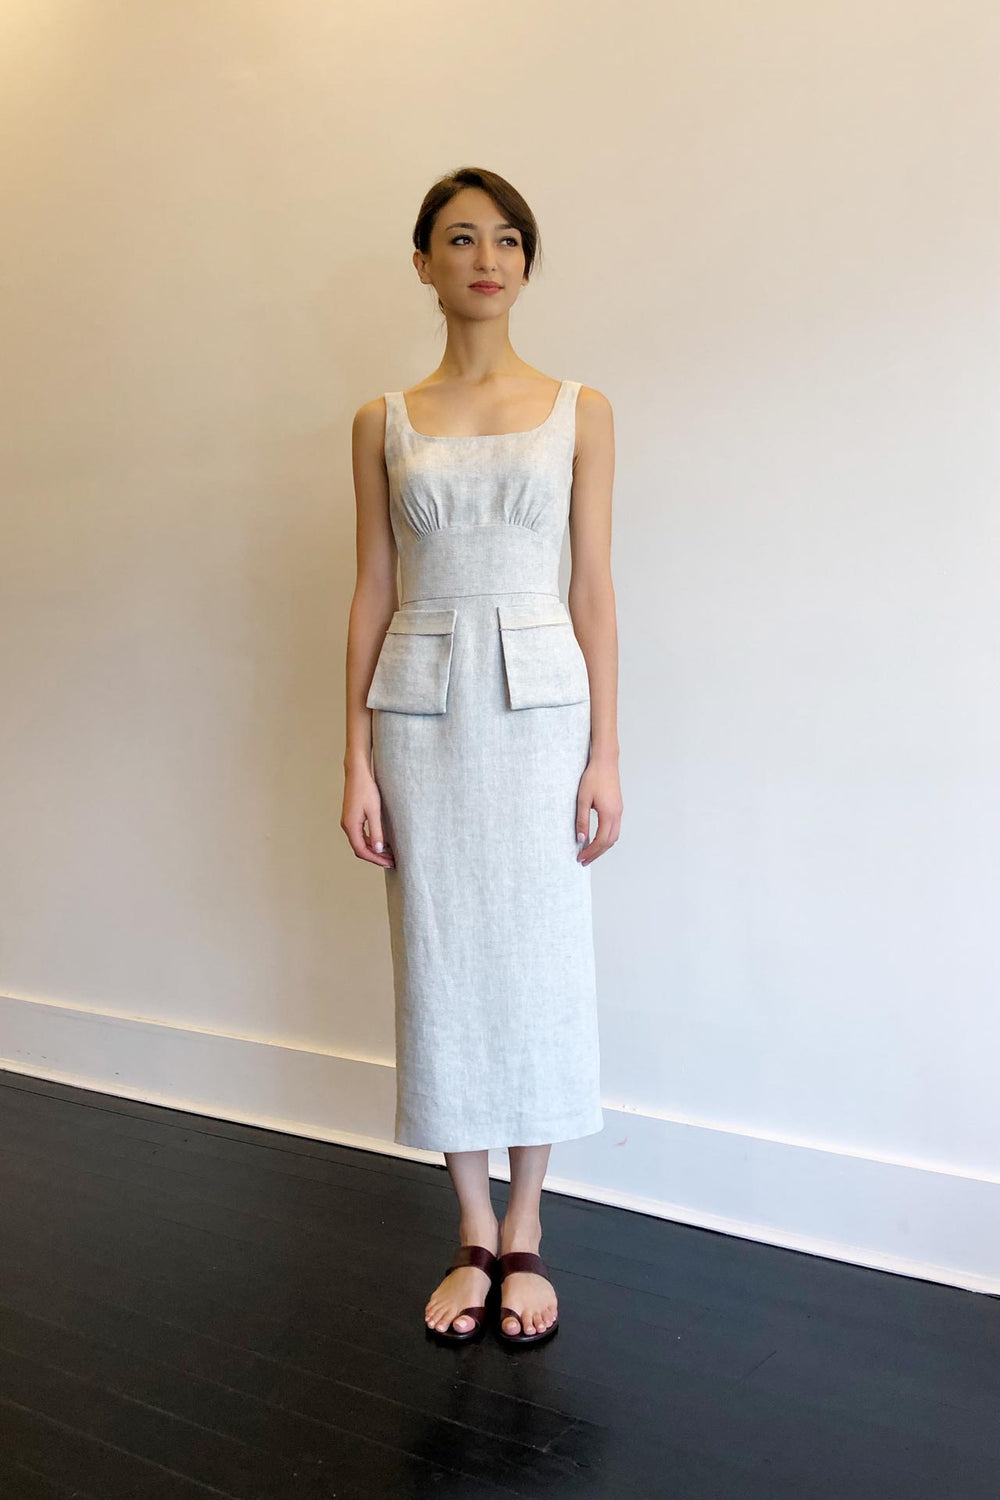 Fashion Designer CARL KAPP collection | Desroches Linen dress White | Sydney Australia